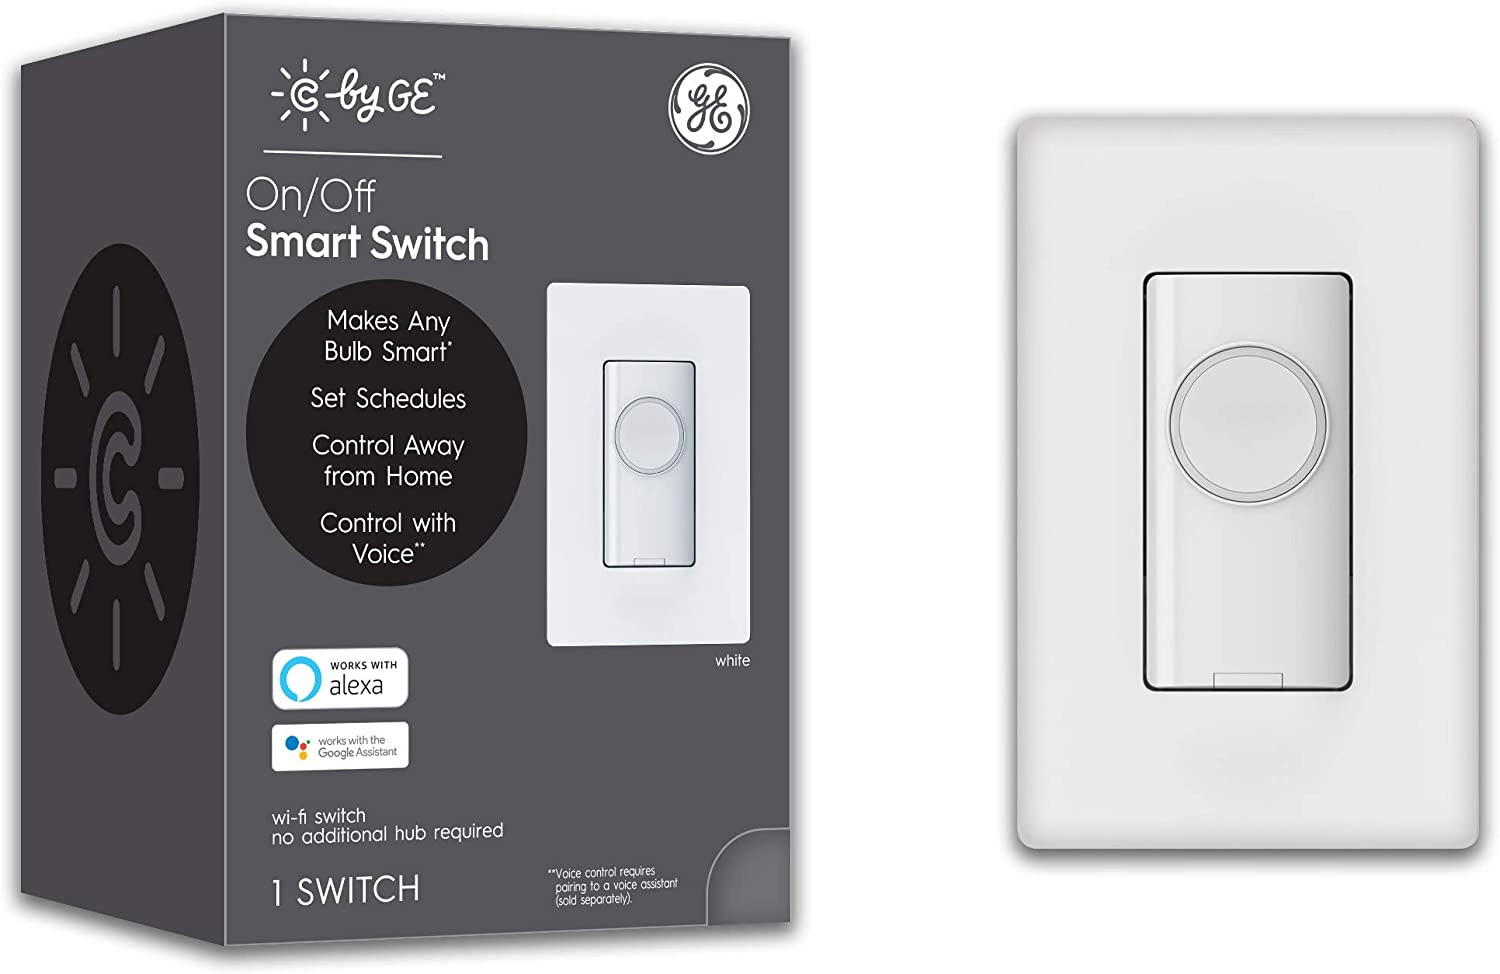 C by GE On/Off 4-Wire Button Style Smart Switch- Works with Alexa + Google Home Without Hub, Single-Pole/3-Way Replacement, White